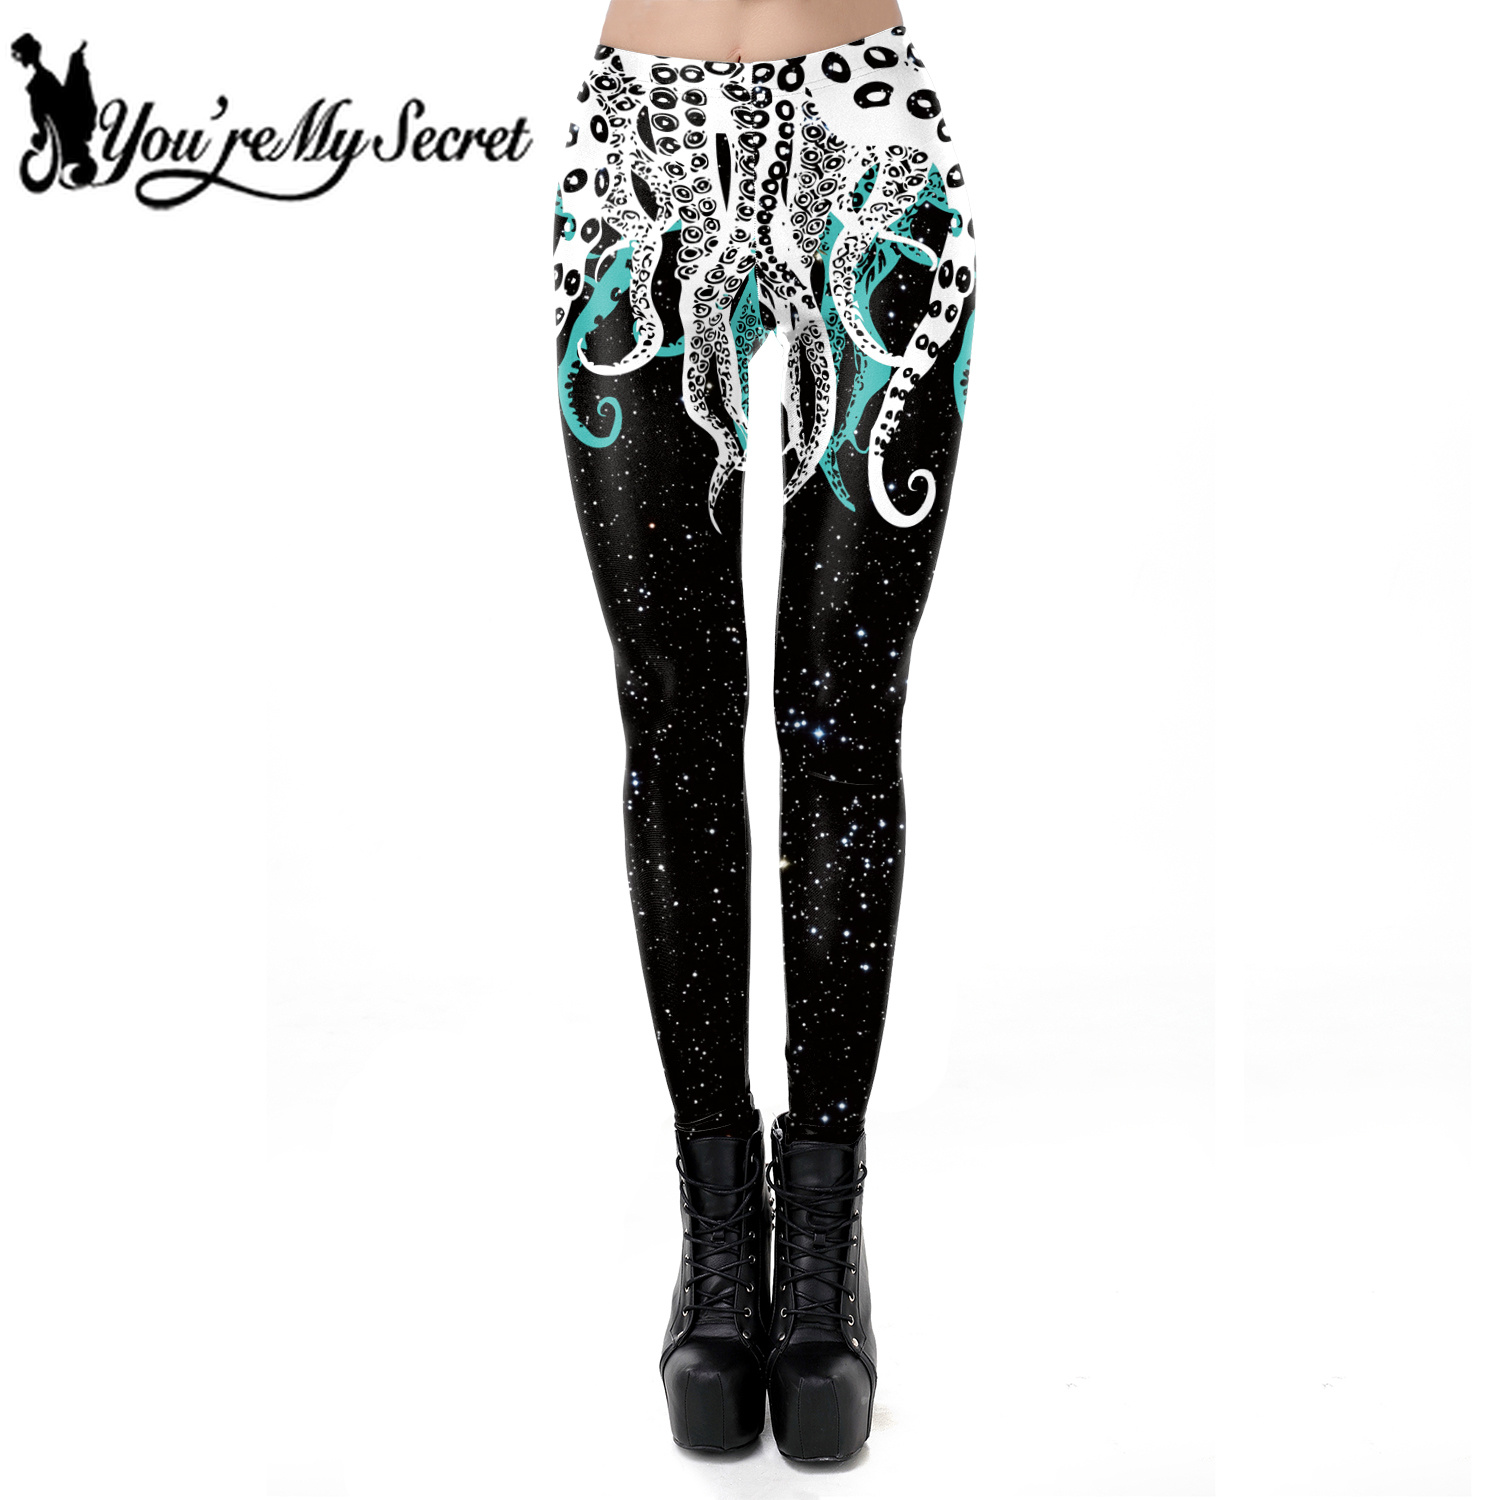 [You're My Secret] 2019 Hot Fashion Octopus Print Gothic Design Women Leggings High Quality Sexy Fitness Workout Ankle Pant